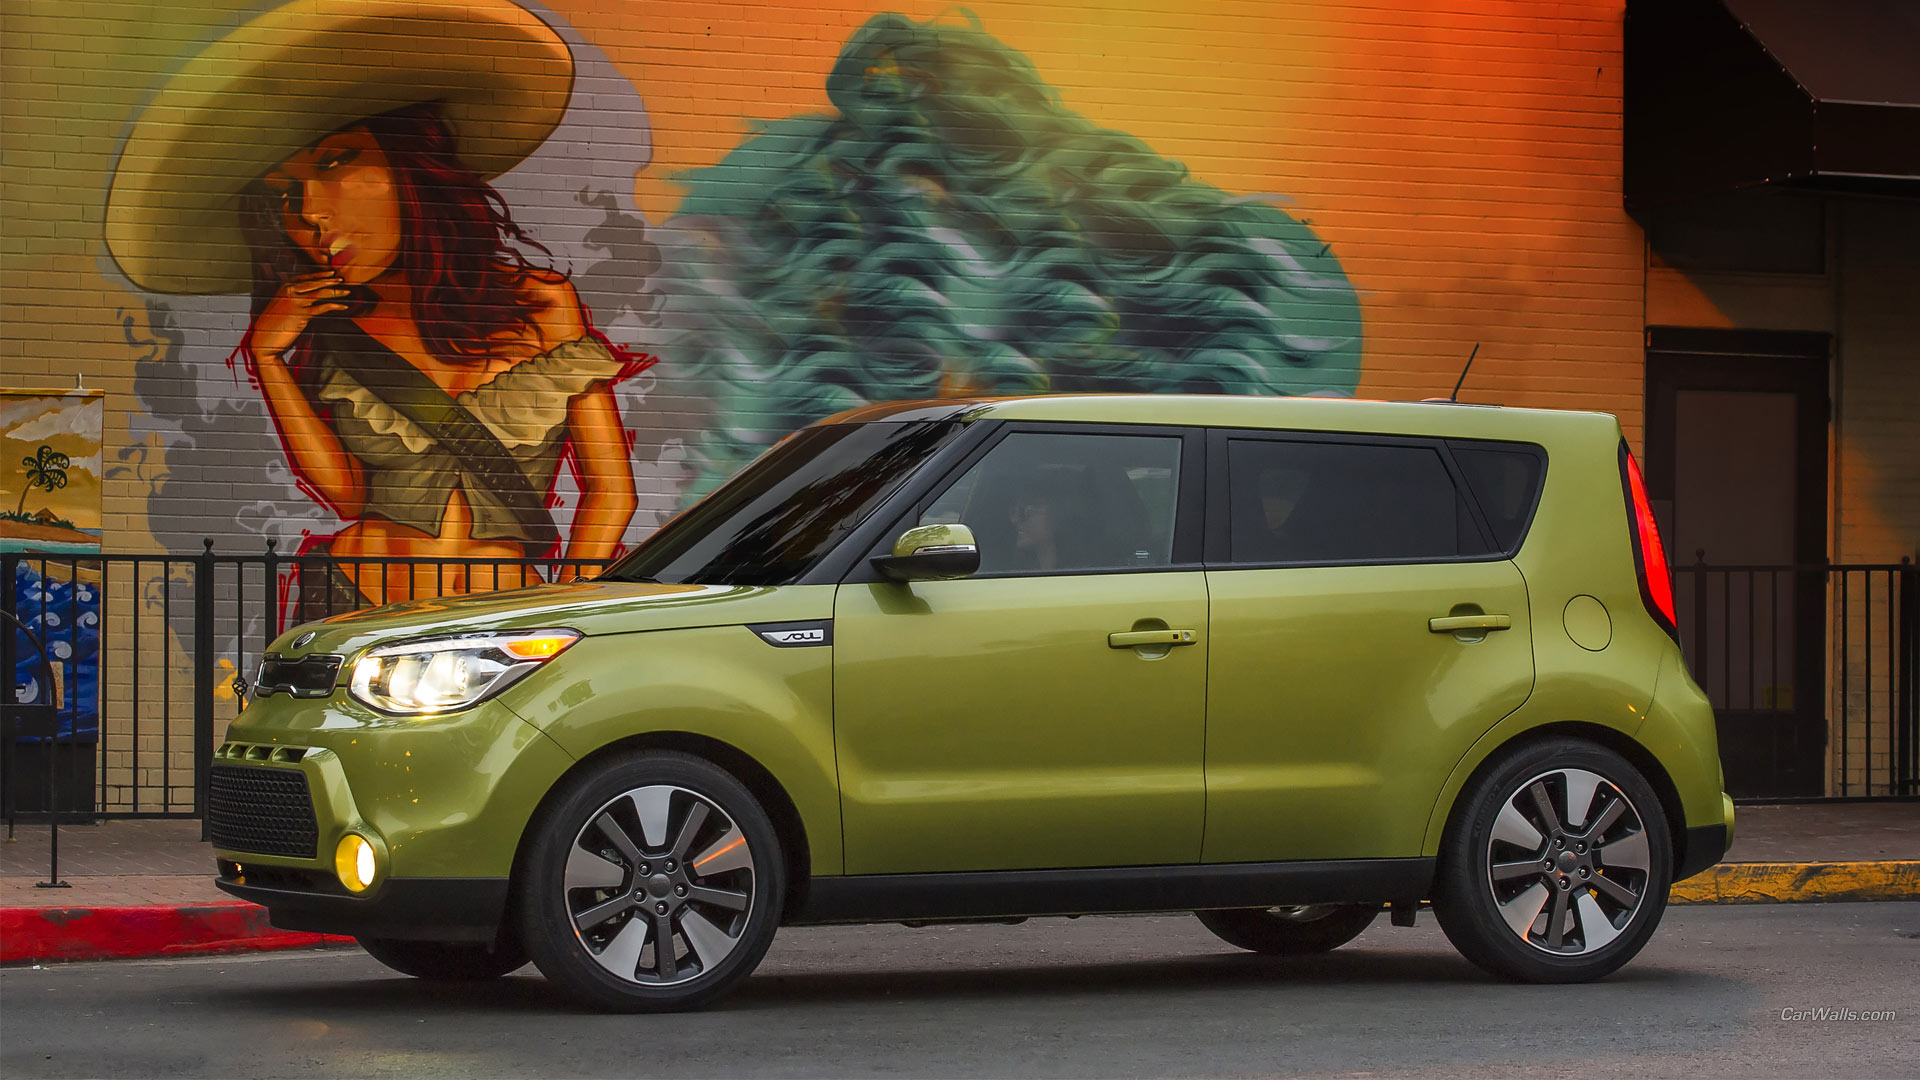 Kia Soul Wallpapers and Background Images   stmednet 1920x1080